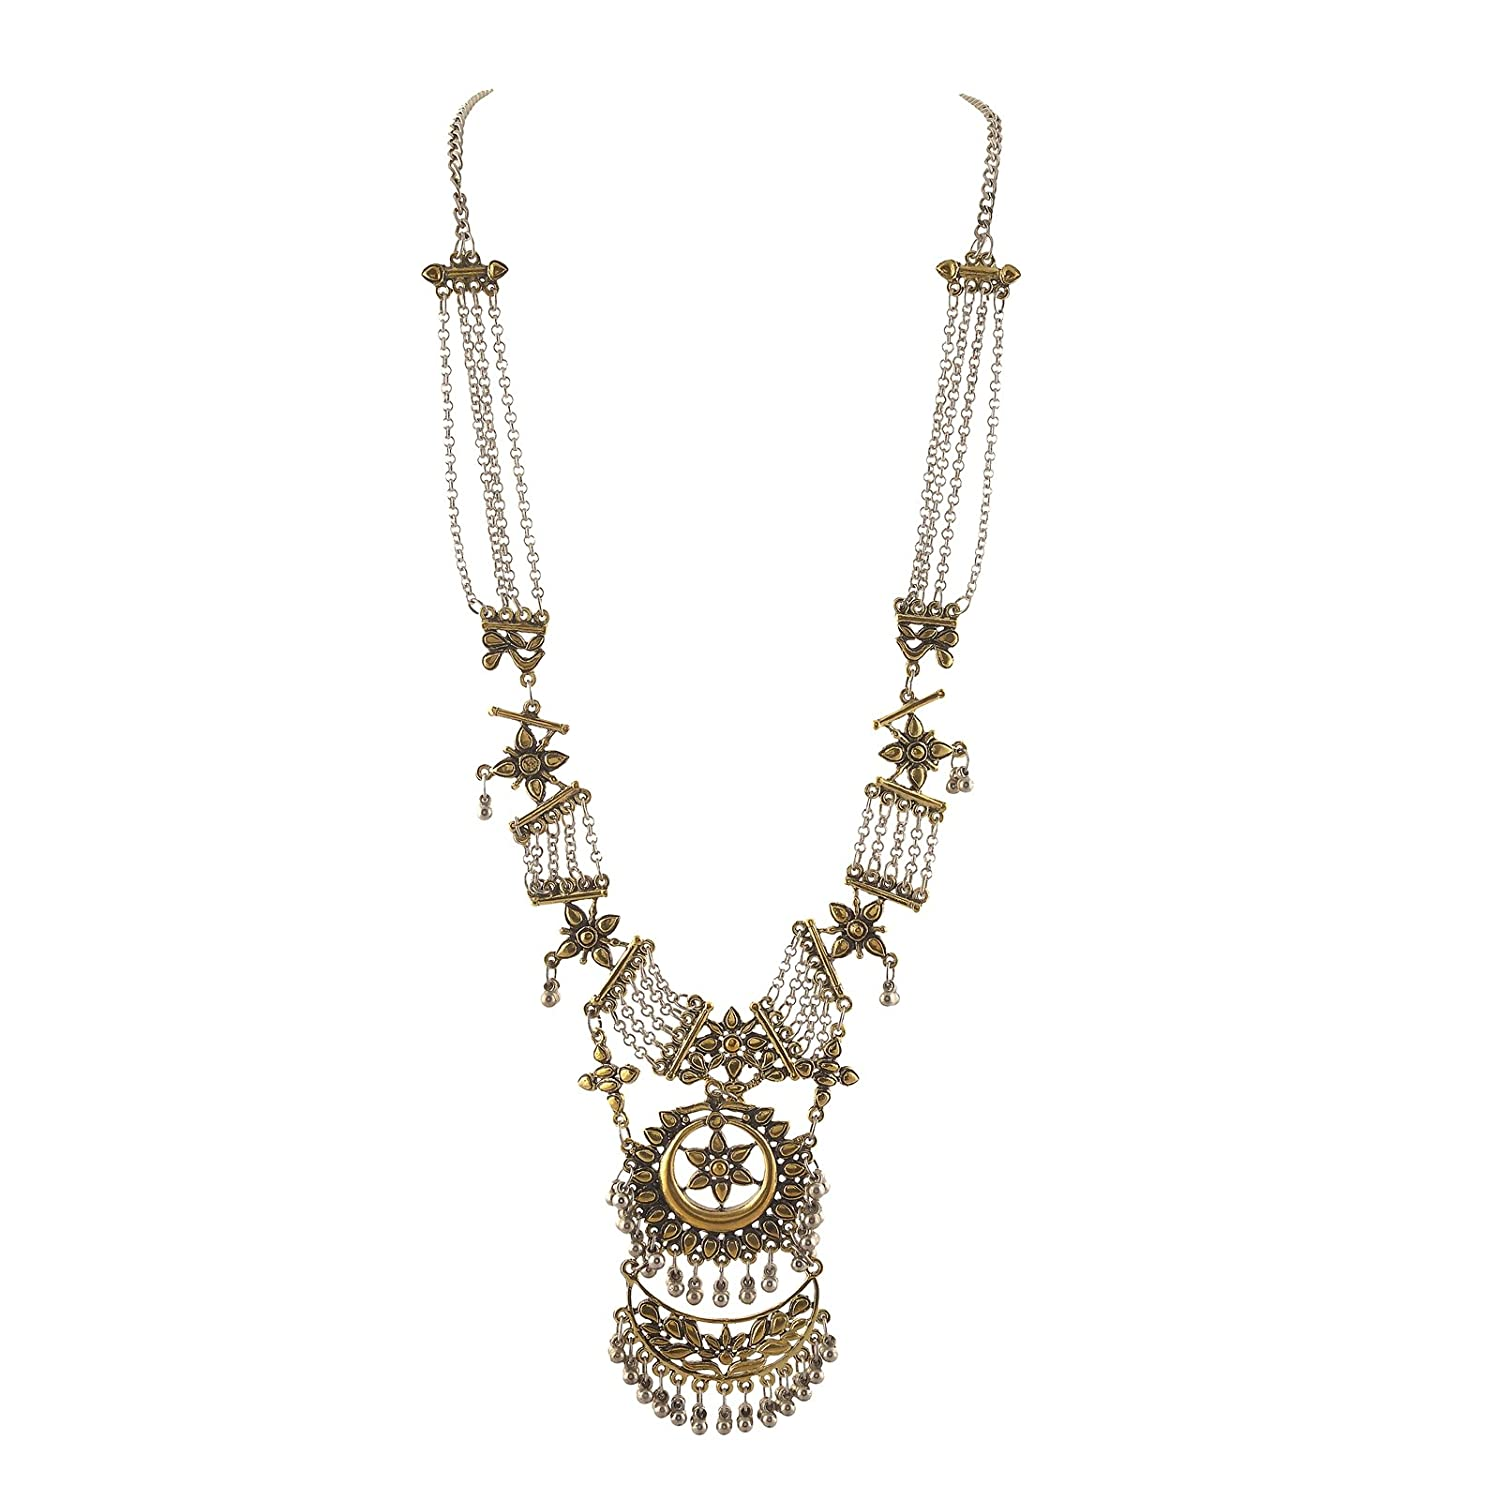 Zephyrr Fashion German Silver Beaded Long Pendant Necklace For Girls and Women